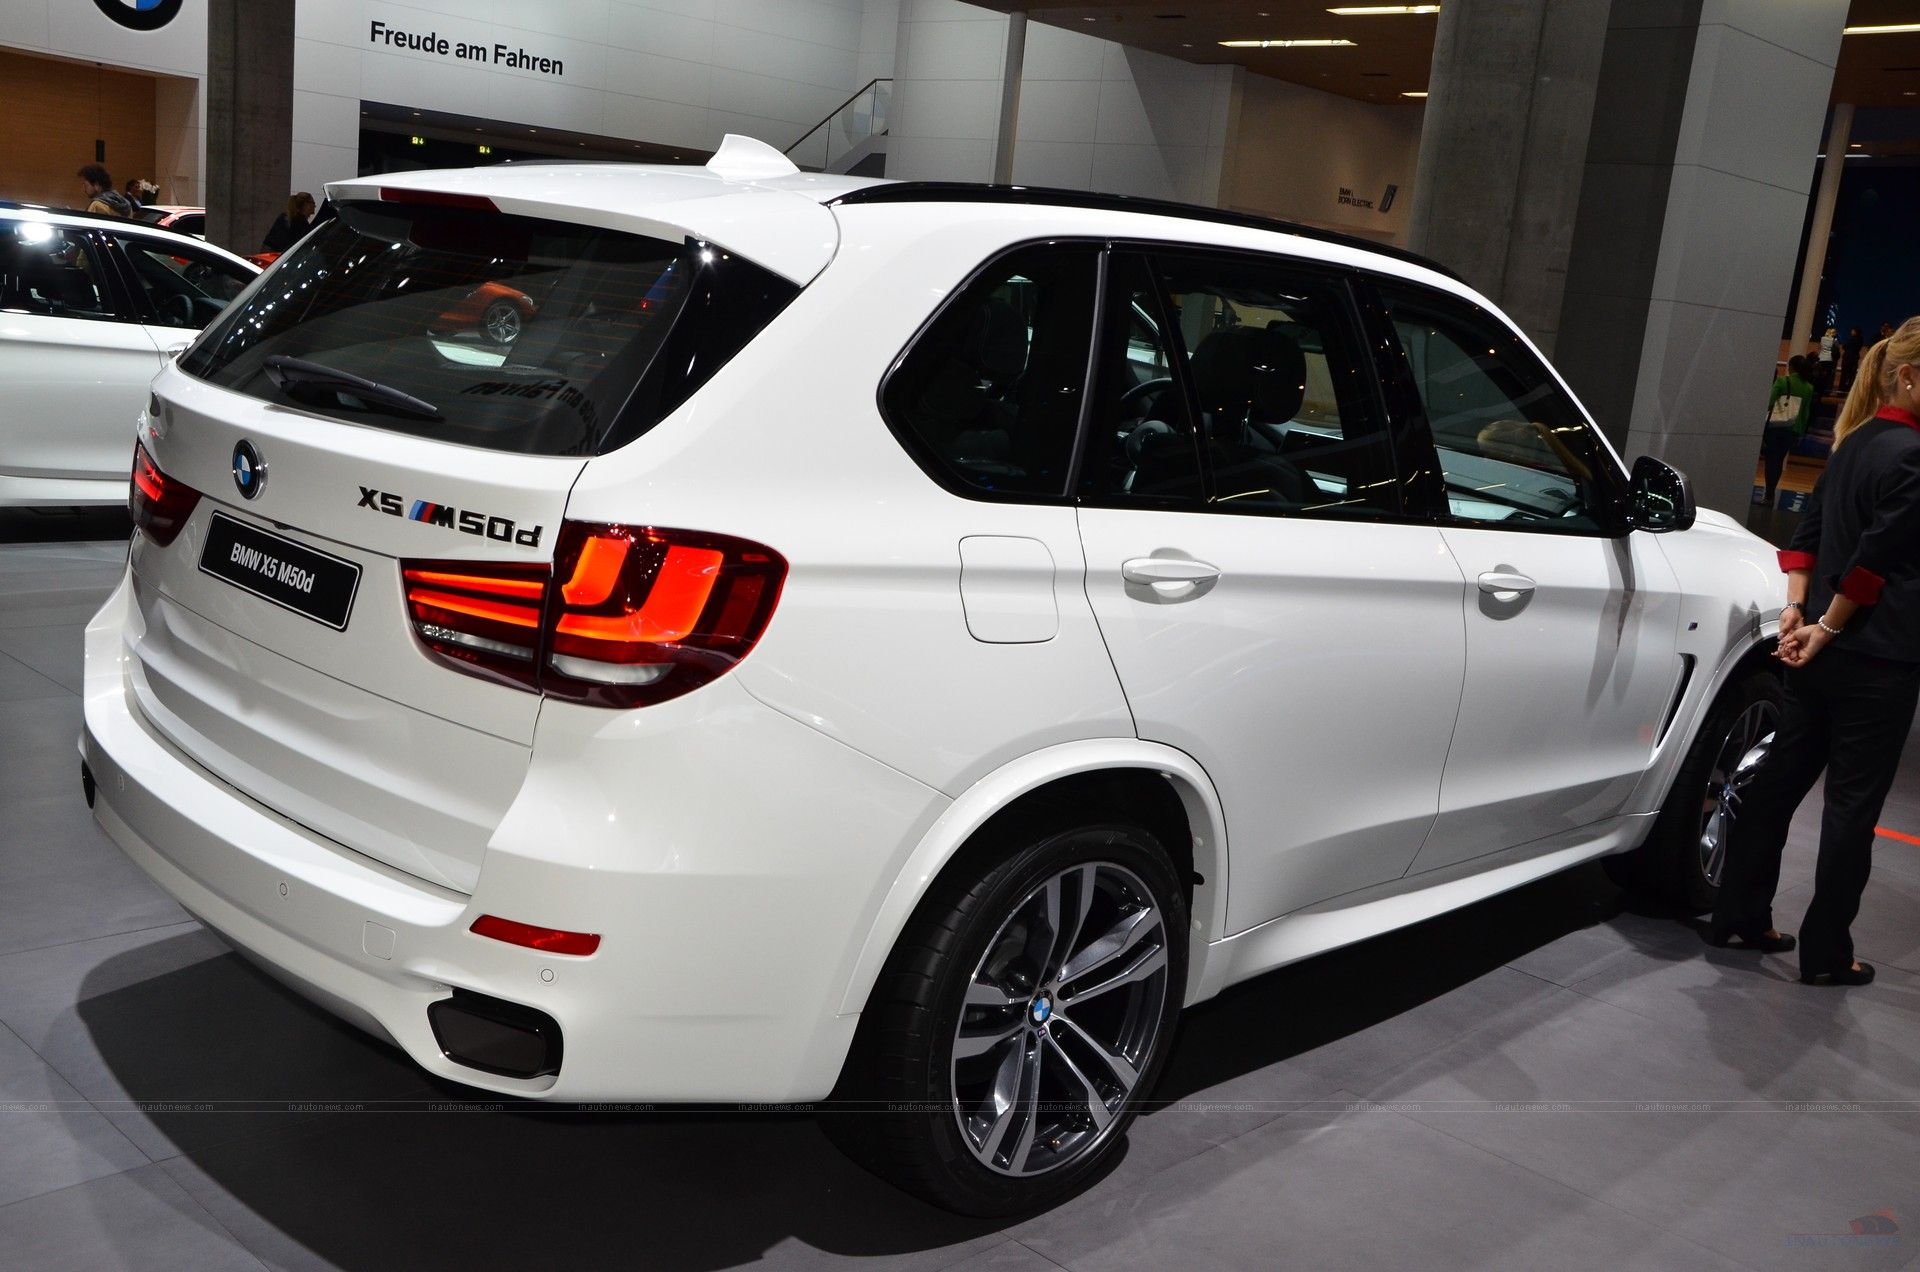 Bmw X5 M50d Looks Terrific In White The World S Best Suv With